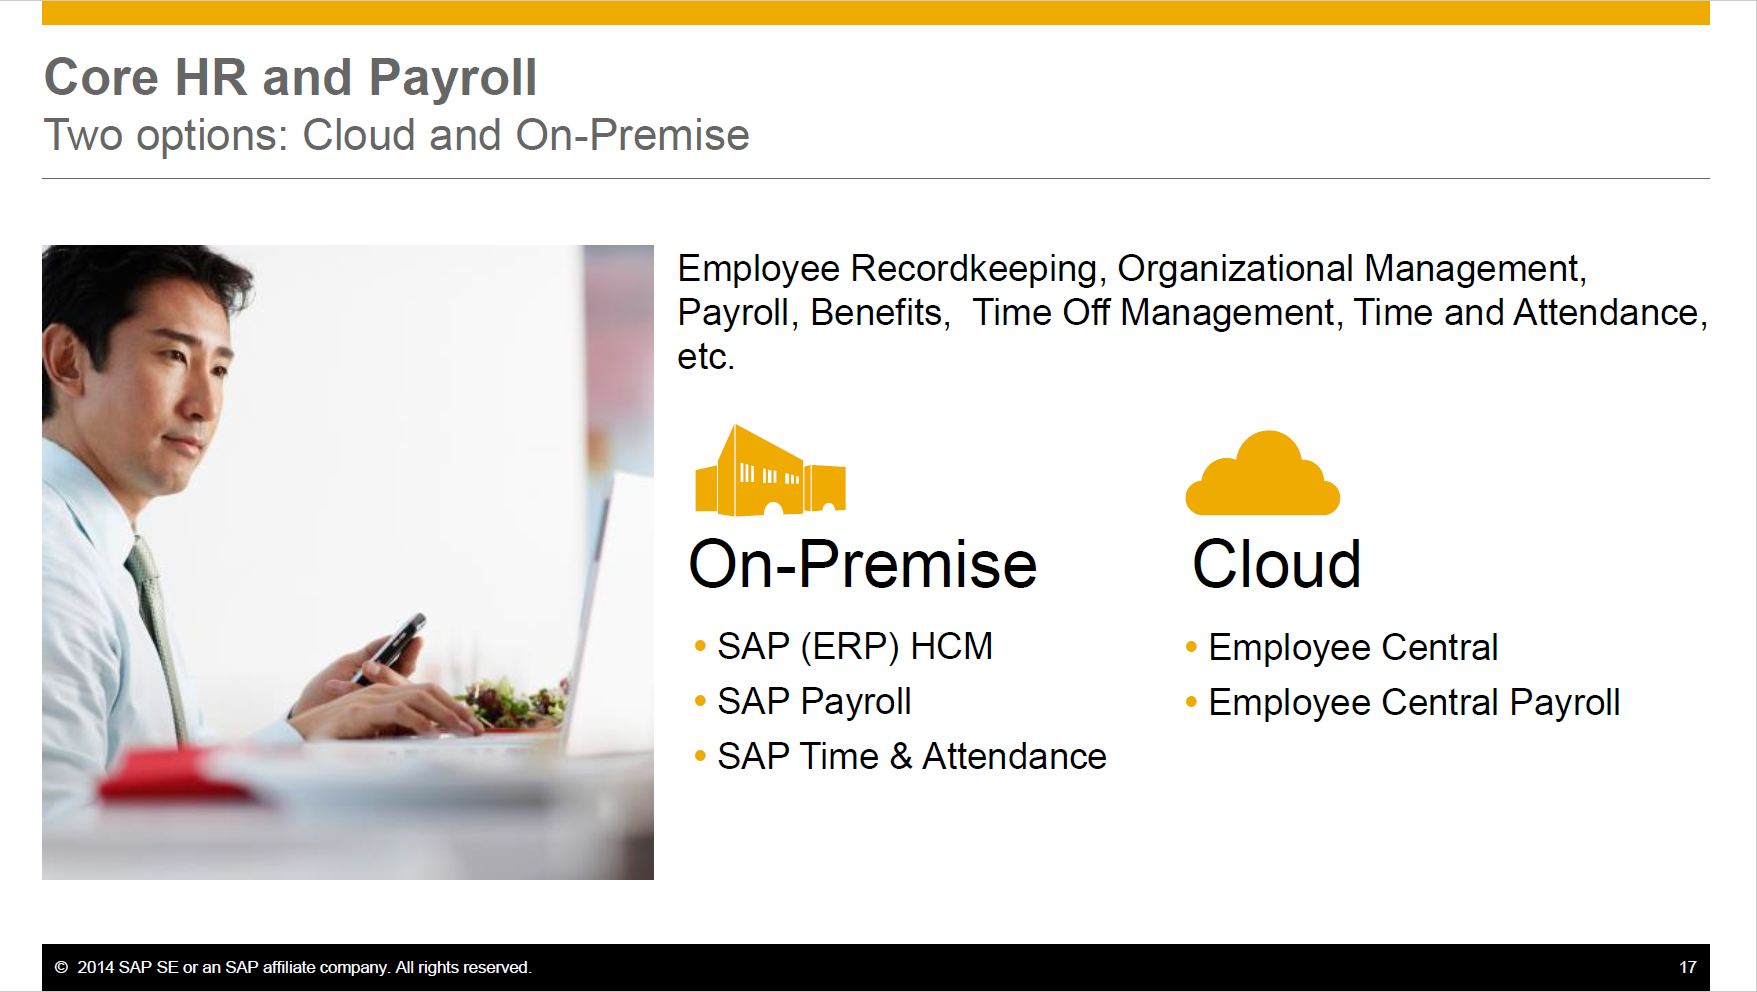 AP HCM customers a planned movement to the cloud and a planned future cessation of its On-Premise HCM applications, including Payroll